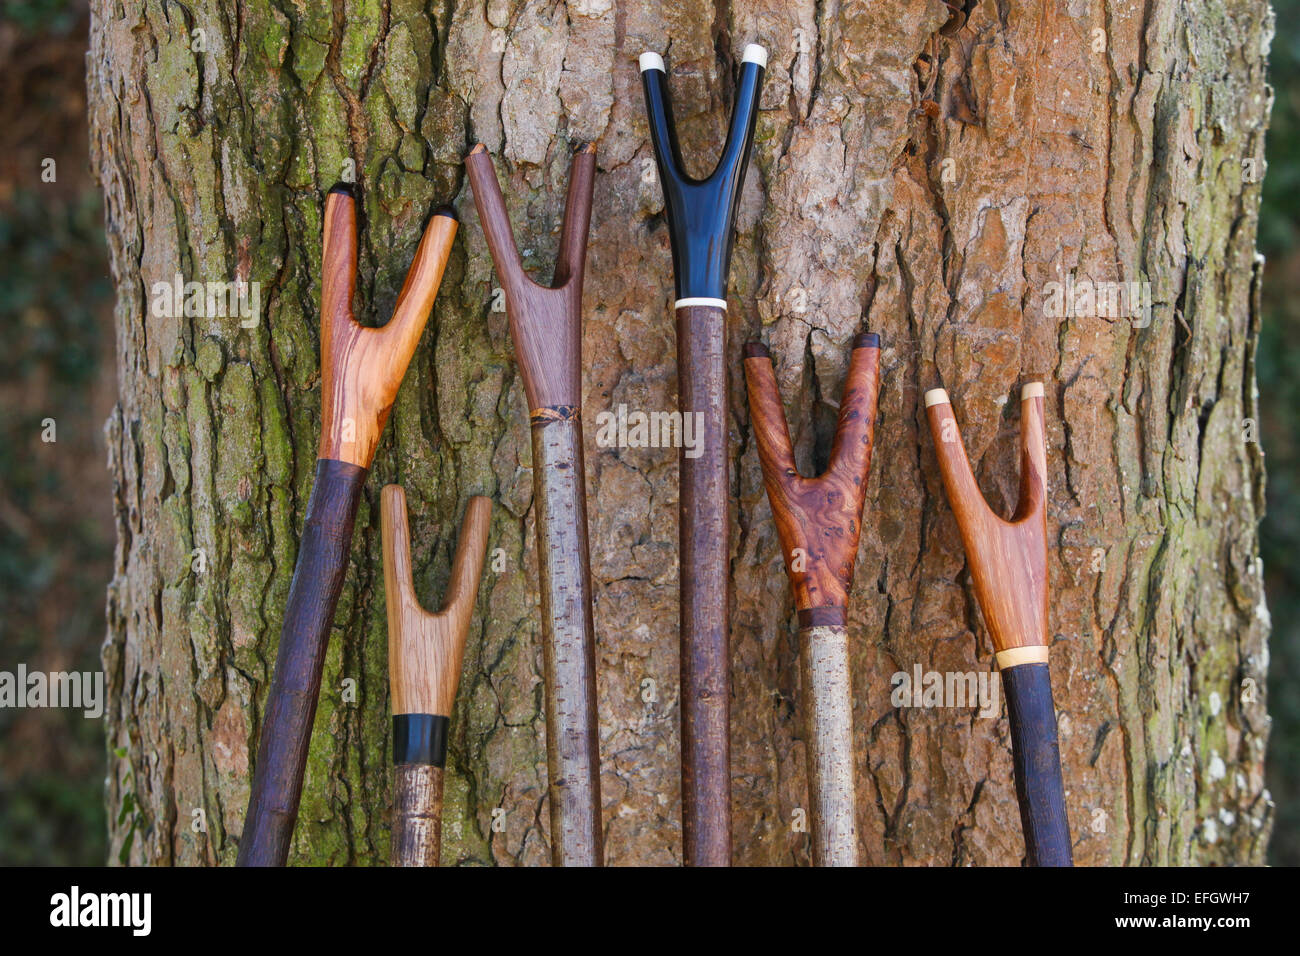 Variety Of Traditional Handcrafted Wooden Walking Sticks With Stock